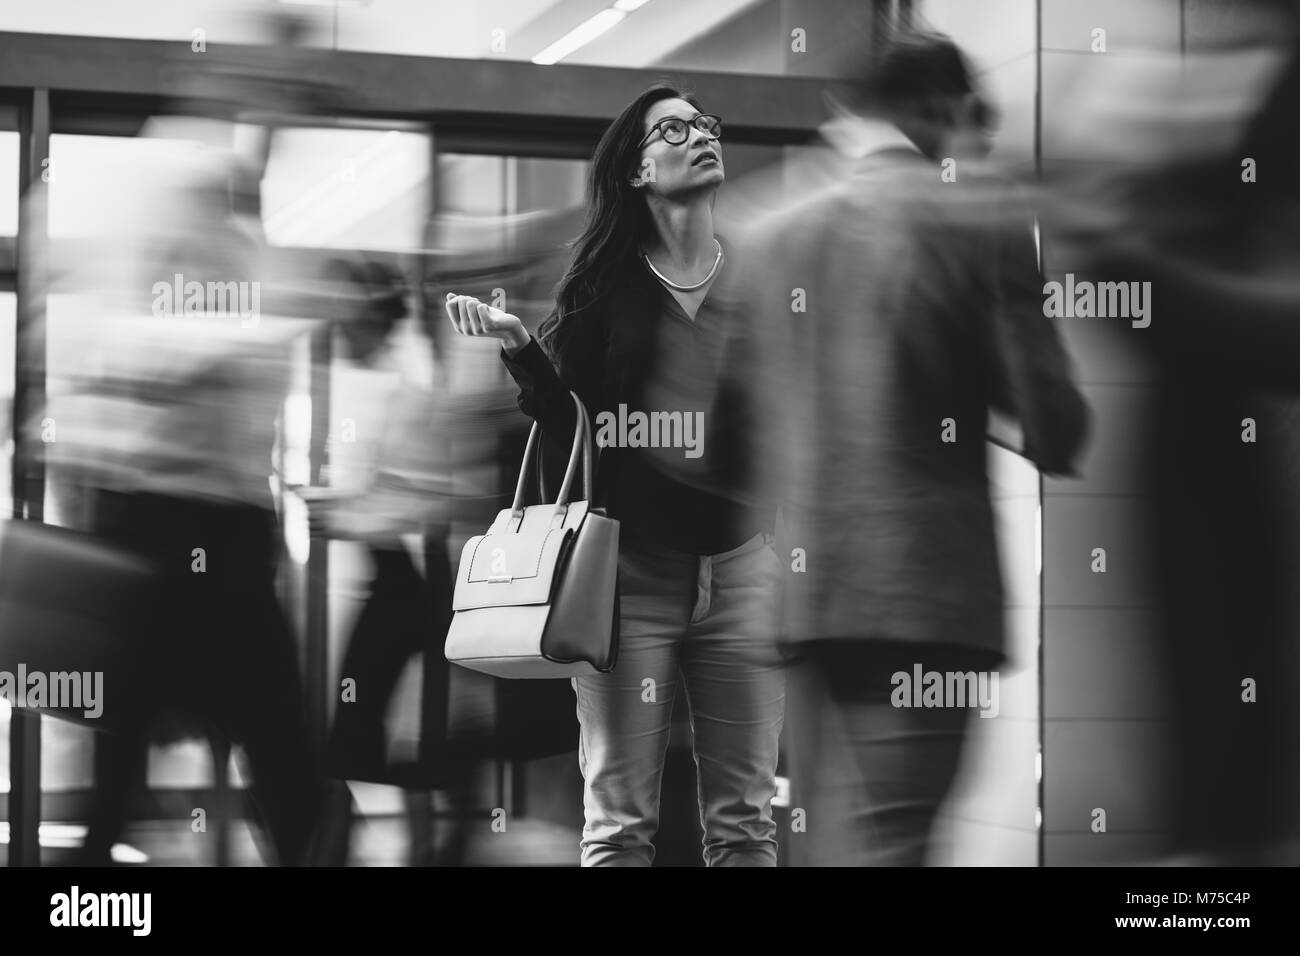 Asian businesswoman waiting for someone with people rushing in the lobby. Motion blur effect. Black and white shot. - Stock Image